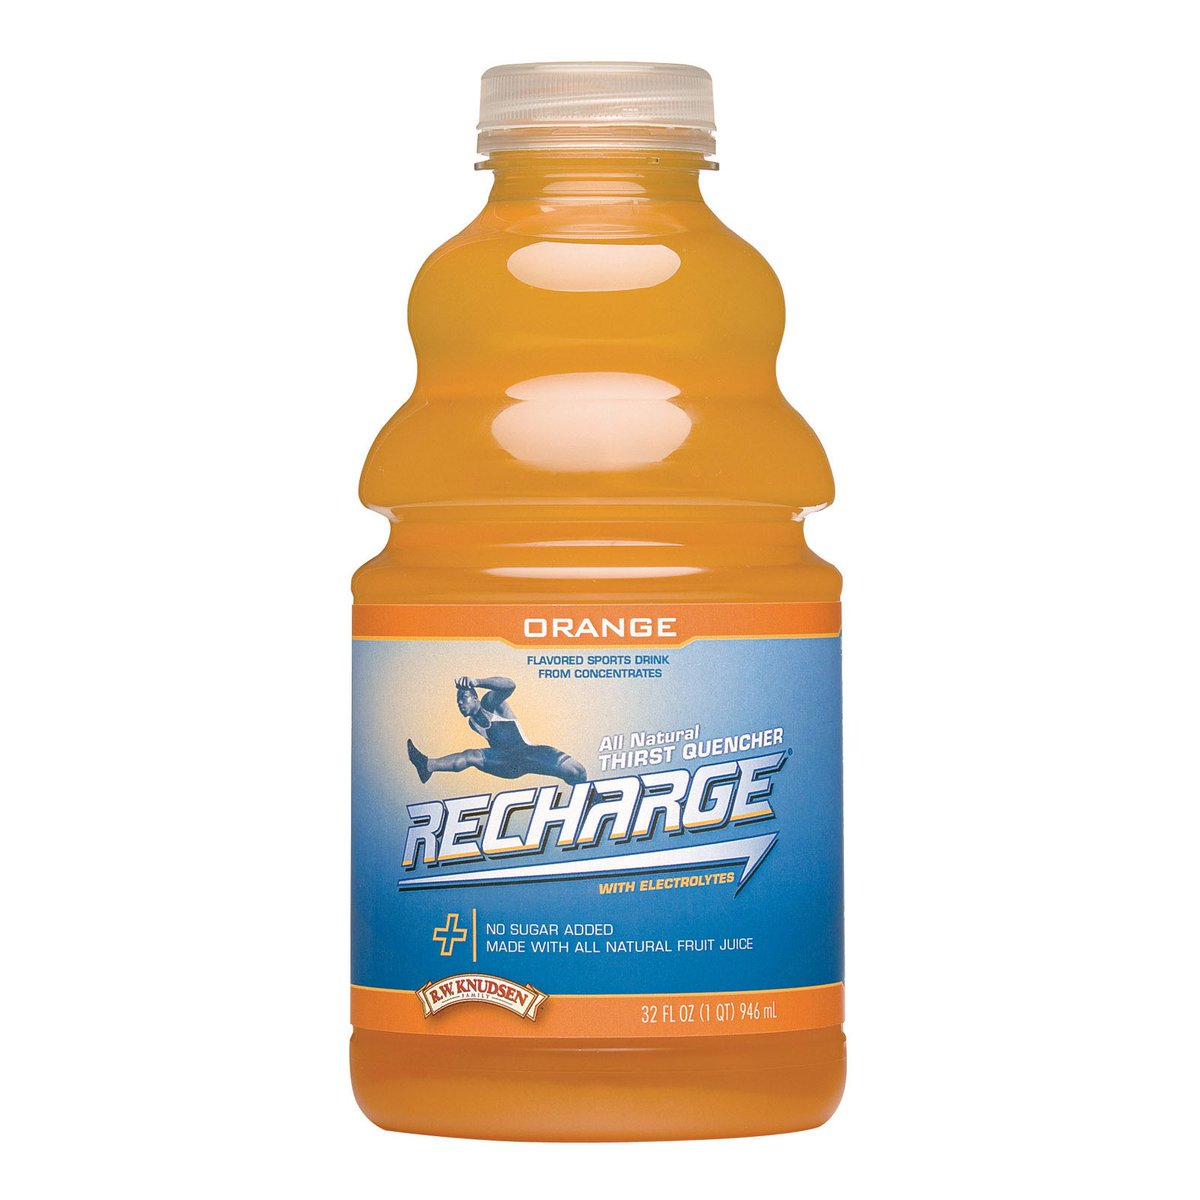 #recharge  #relax  #selfcare  #wellness  #yoga  #skincare  #mindfulness  #energy  #rest  #teamiblends  #travel  #motivation  #love  #nature  #meditation  #massage  #healthylifestyle  #selflove  #health  #battery  #refuel  #inspiration    R.W. Knudsen Juice – Orange Recharge – Case of 12 – 32 Fl oz.